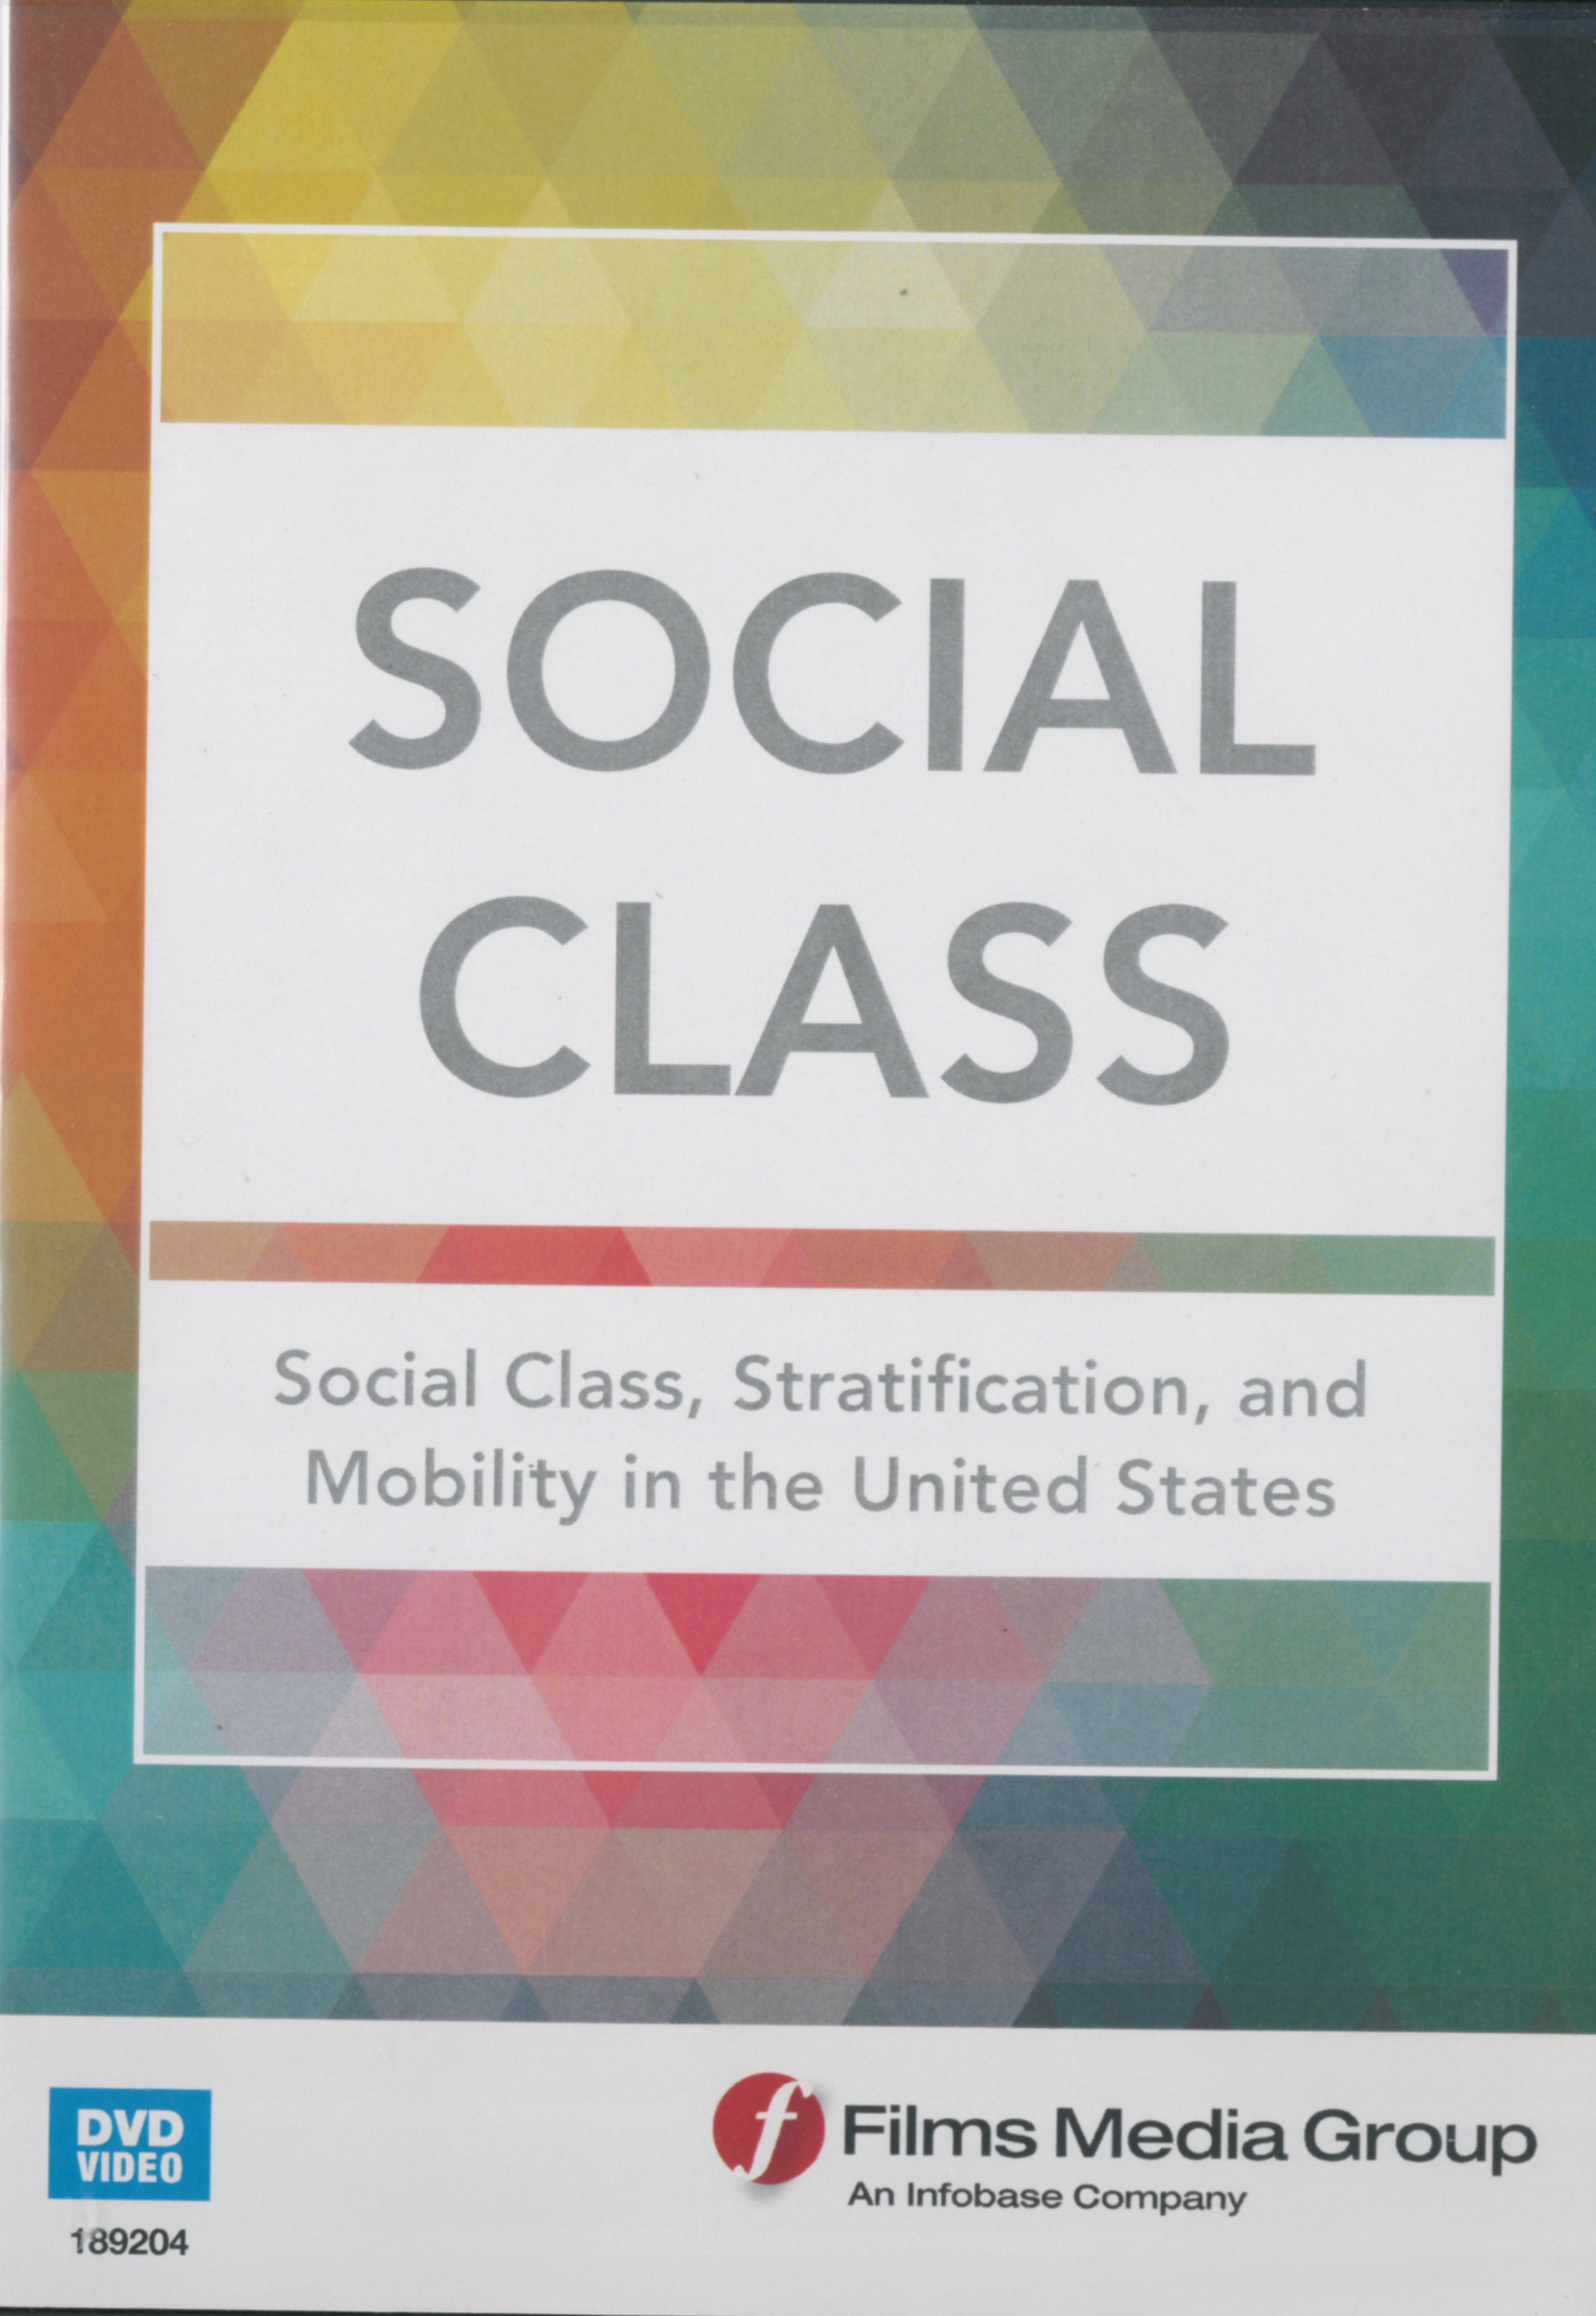 Social Class, Stratification, and Mobility in the United States